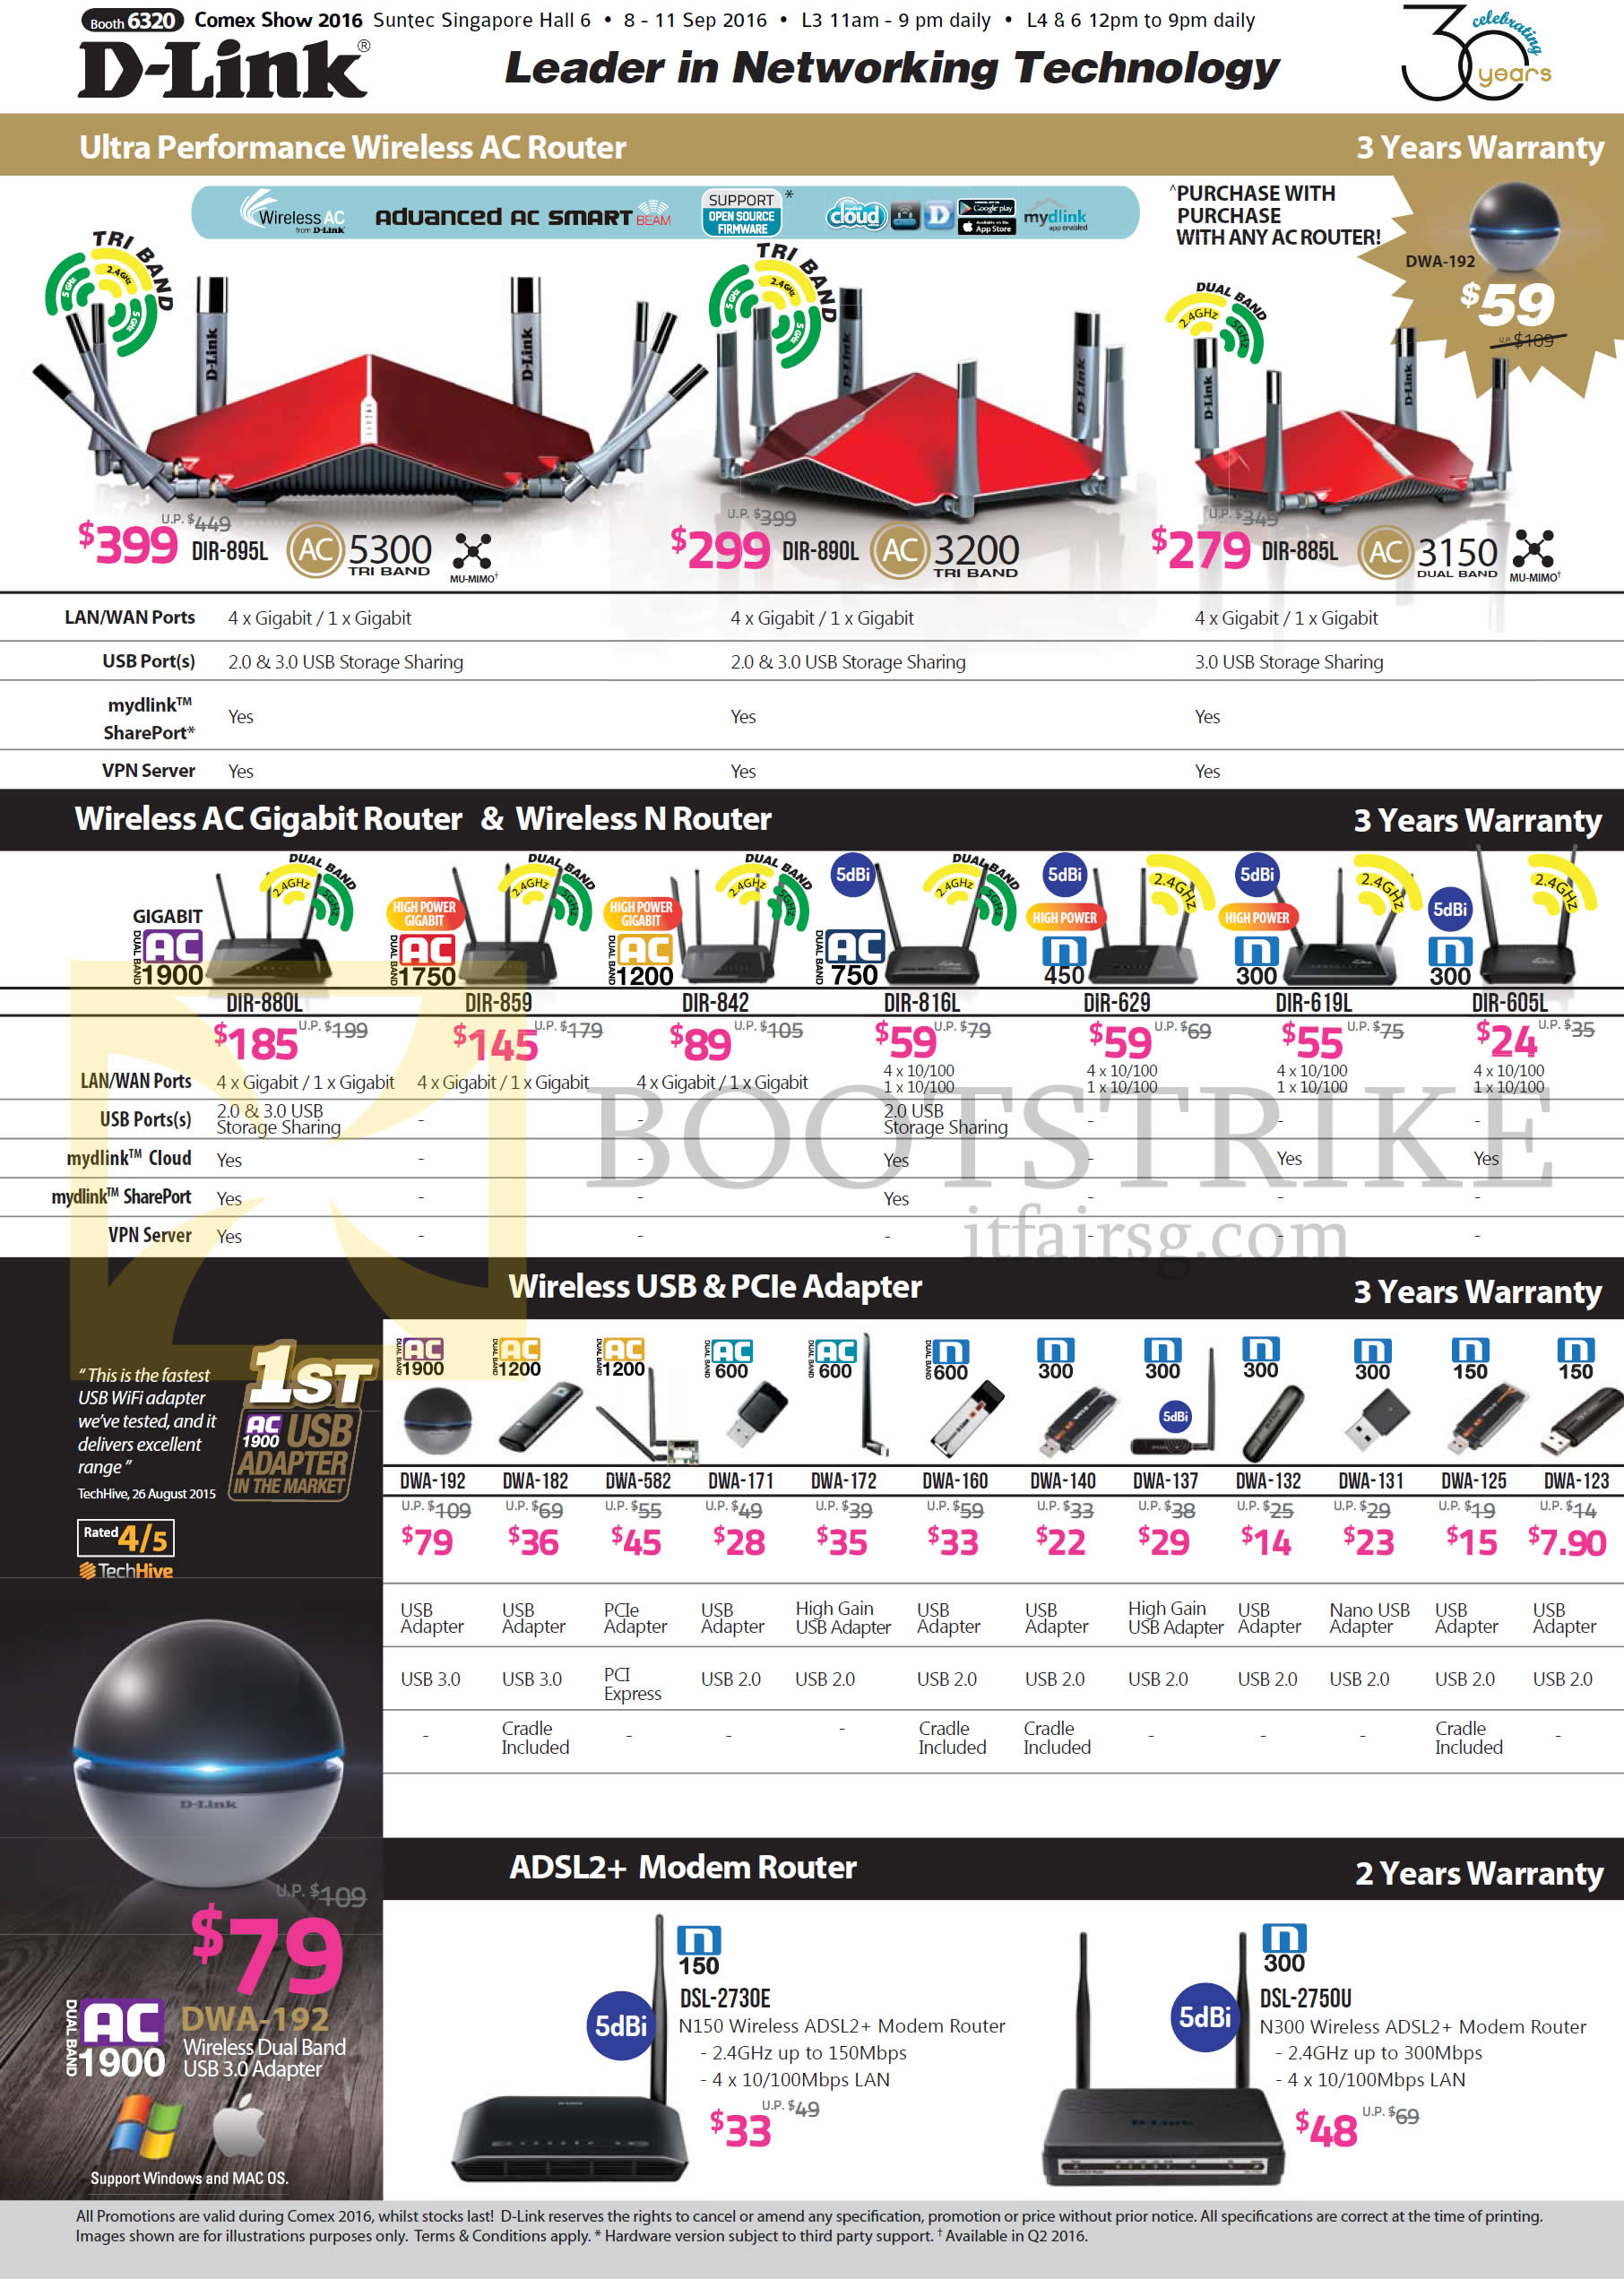 COMEX 2016 price list image brochure of D-Link Networking Wireless Routers, USB PCIe Adapters, DIR-895L, 890L, 885L, 880L, 859, 816L, 619L, 605L, DWA-192, 182, 582, 171, 160, 140, DSL-2730E, 2750E